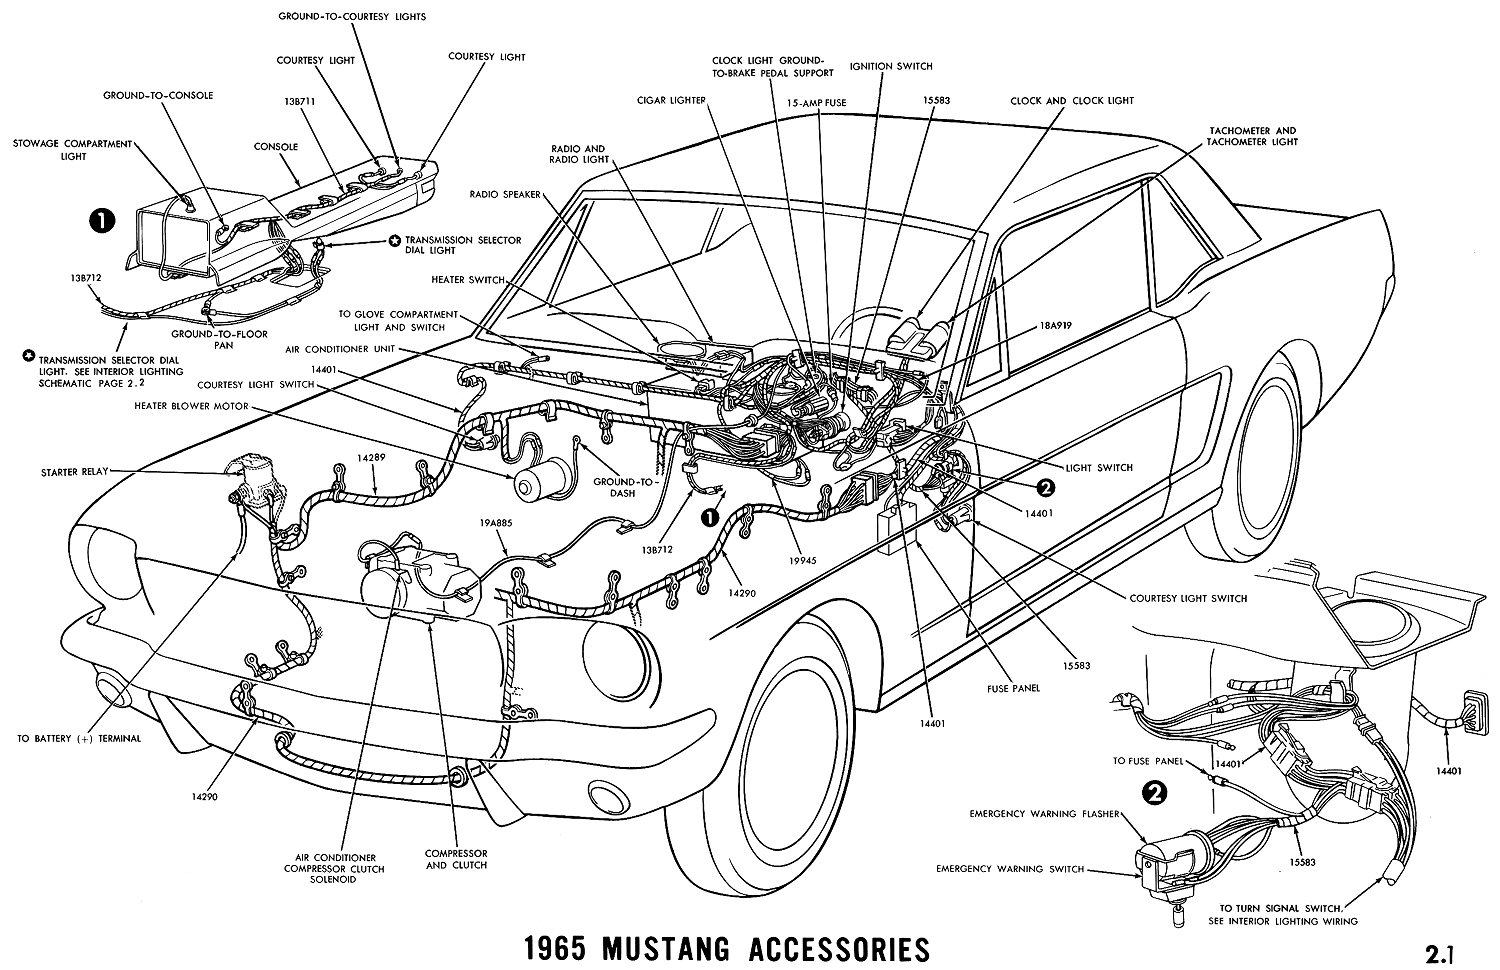 1965h 1965 mustang wiring diagrams average joe restoration 1966 mustang alternator wiring diagram at mifinder.co